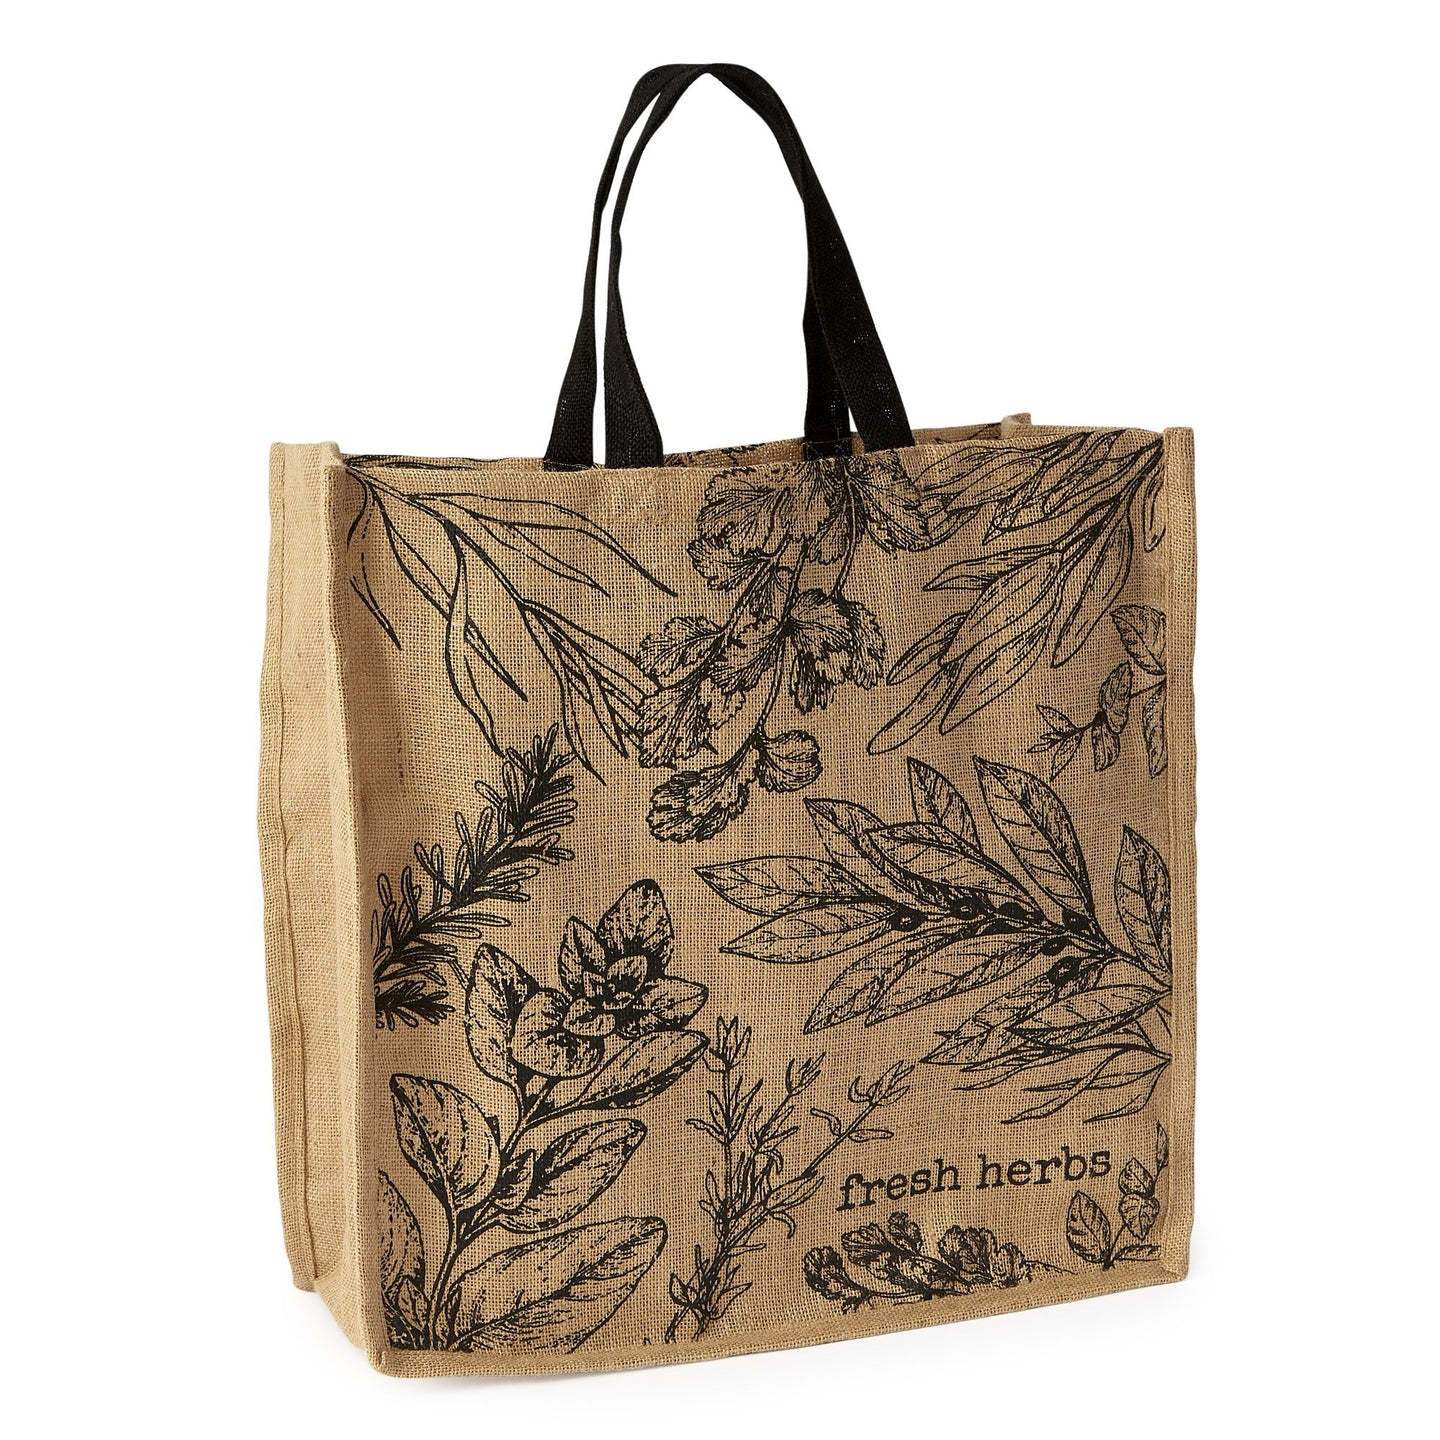 Fresh Herbs Printed Tote - the-southern-magnolia-too